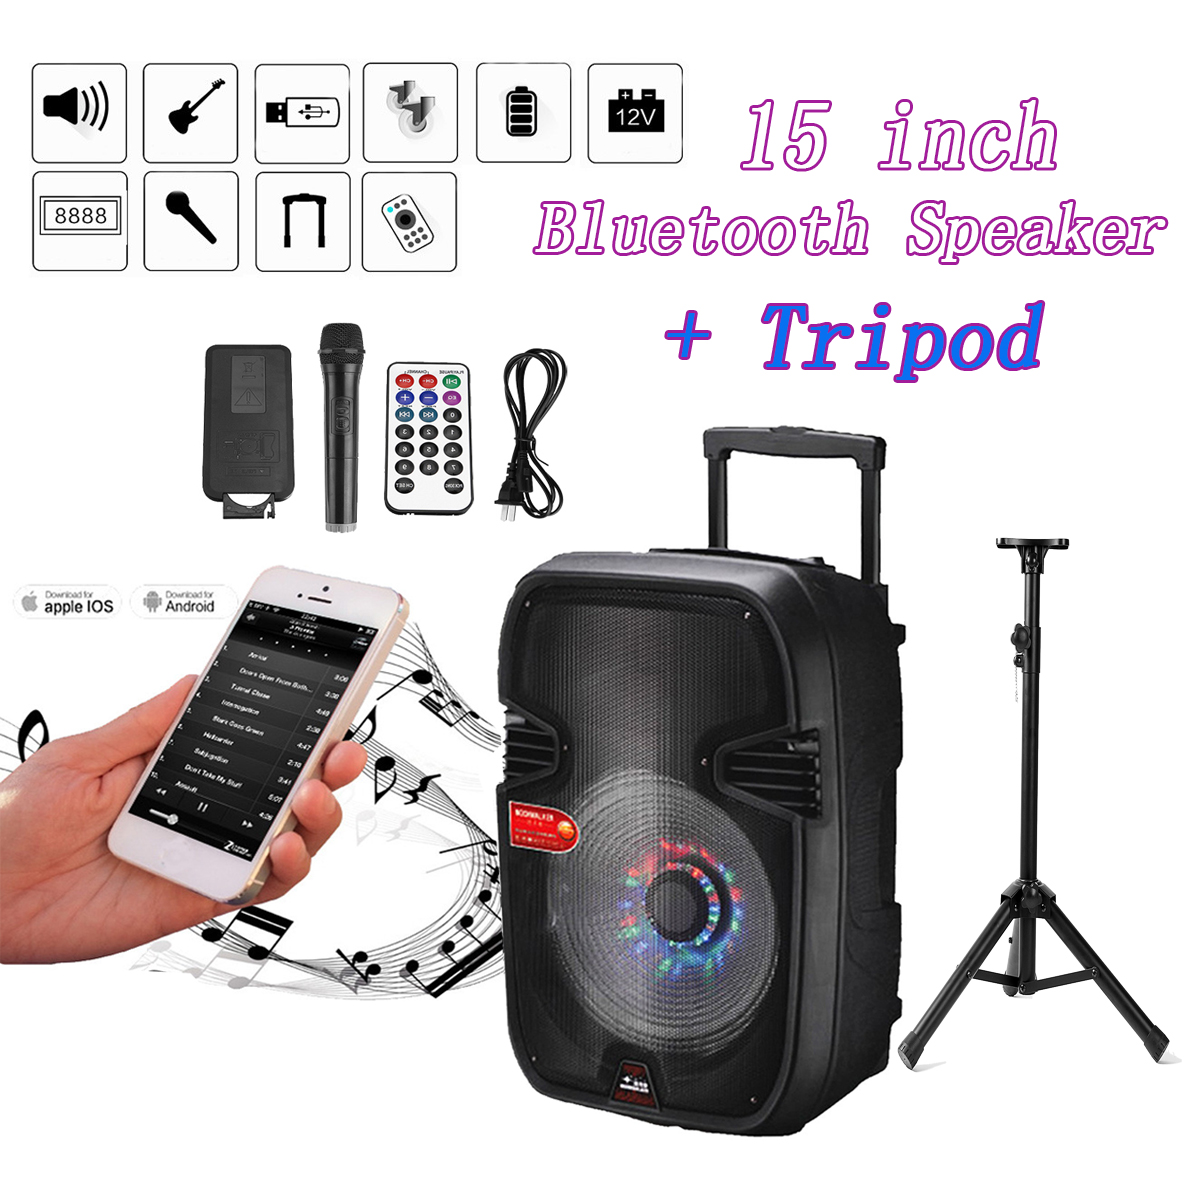 Outdoor Wireless Bluetooth Speaker Portable Stereo Subwoof Speaker Loudspeakers Super Bass Speaker With USB/TF Card outdoor portable bluetooth speaker wireless waterproof bass loud speaker 3d hifi stereo subwoofer support tf card fm radio